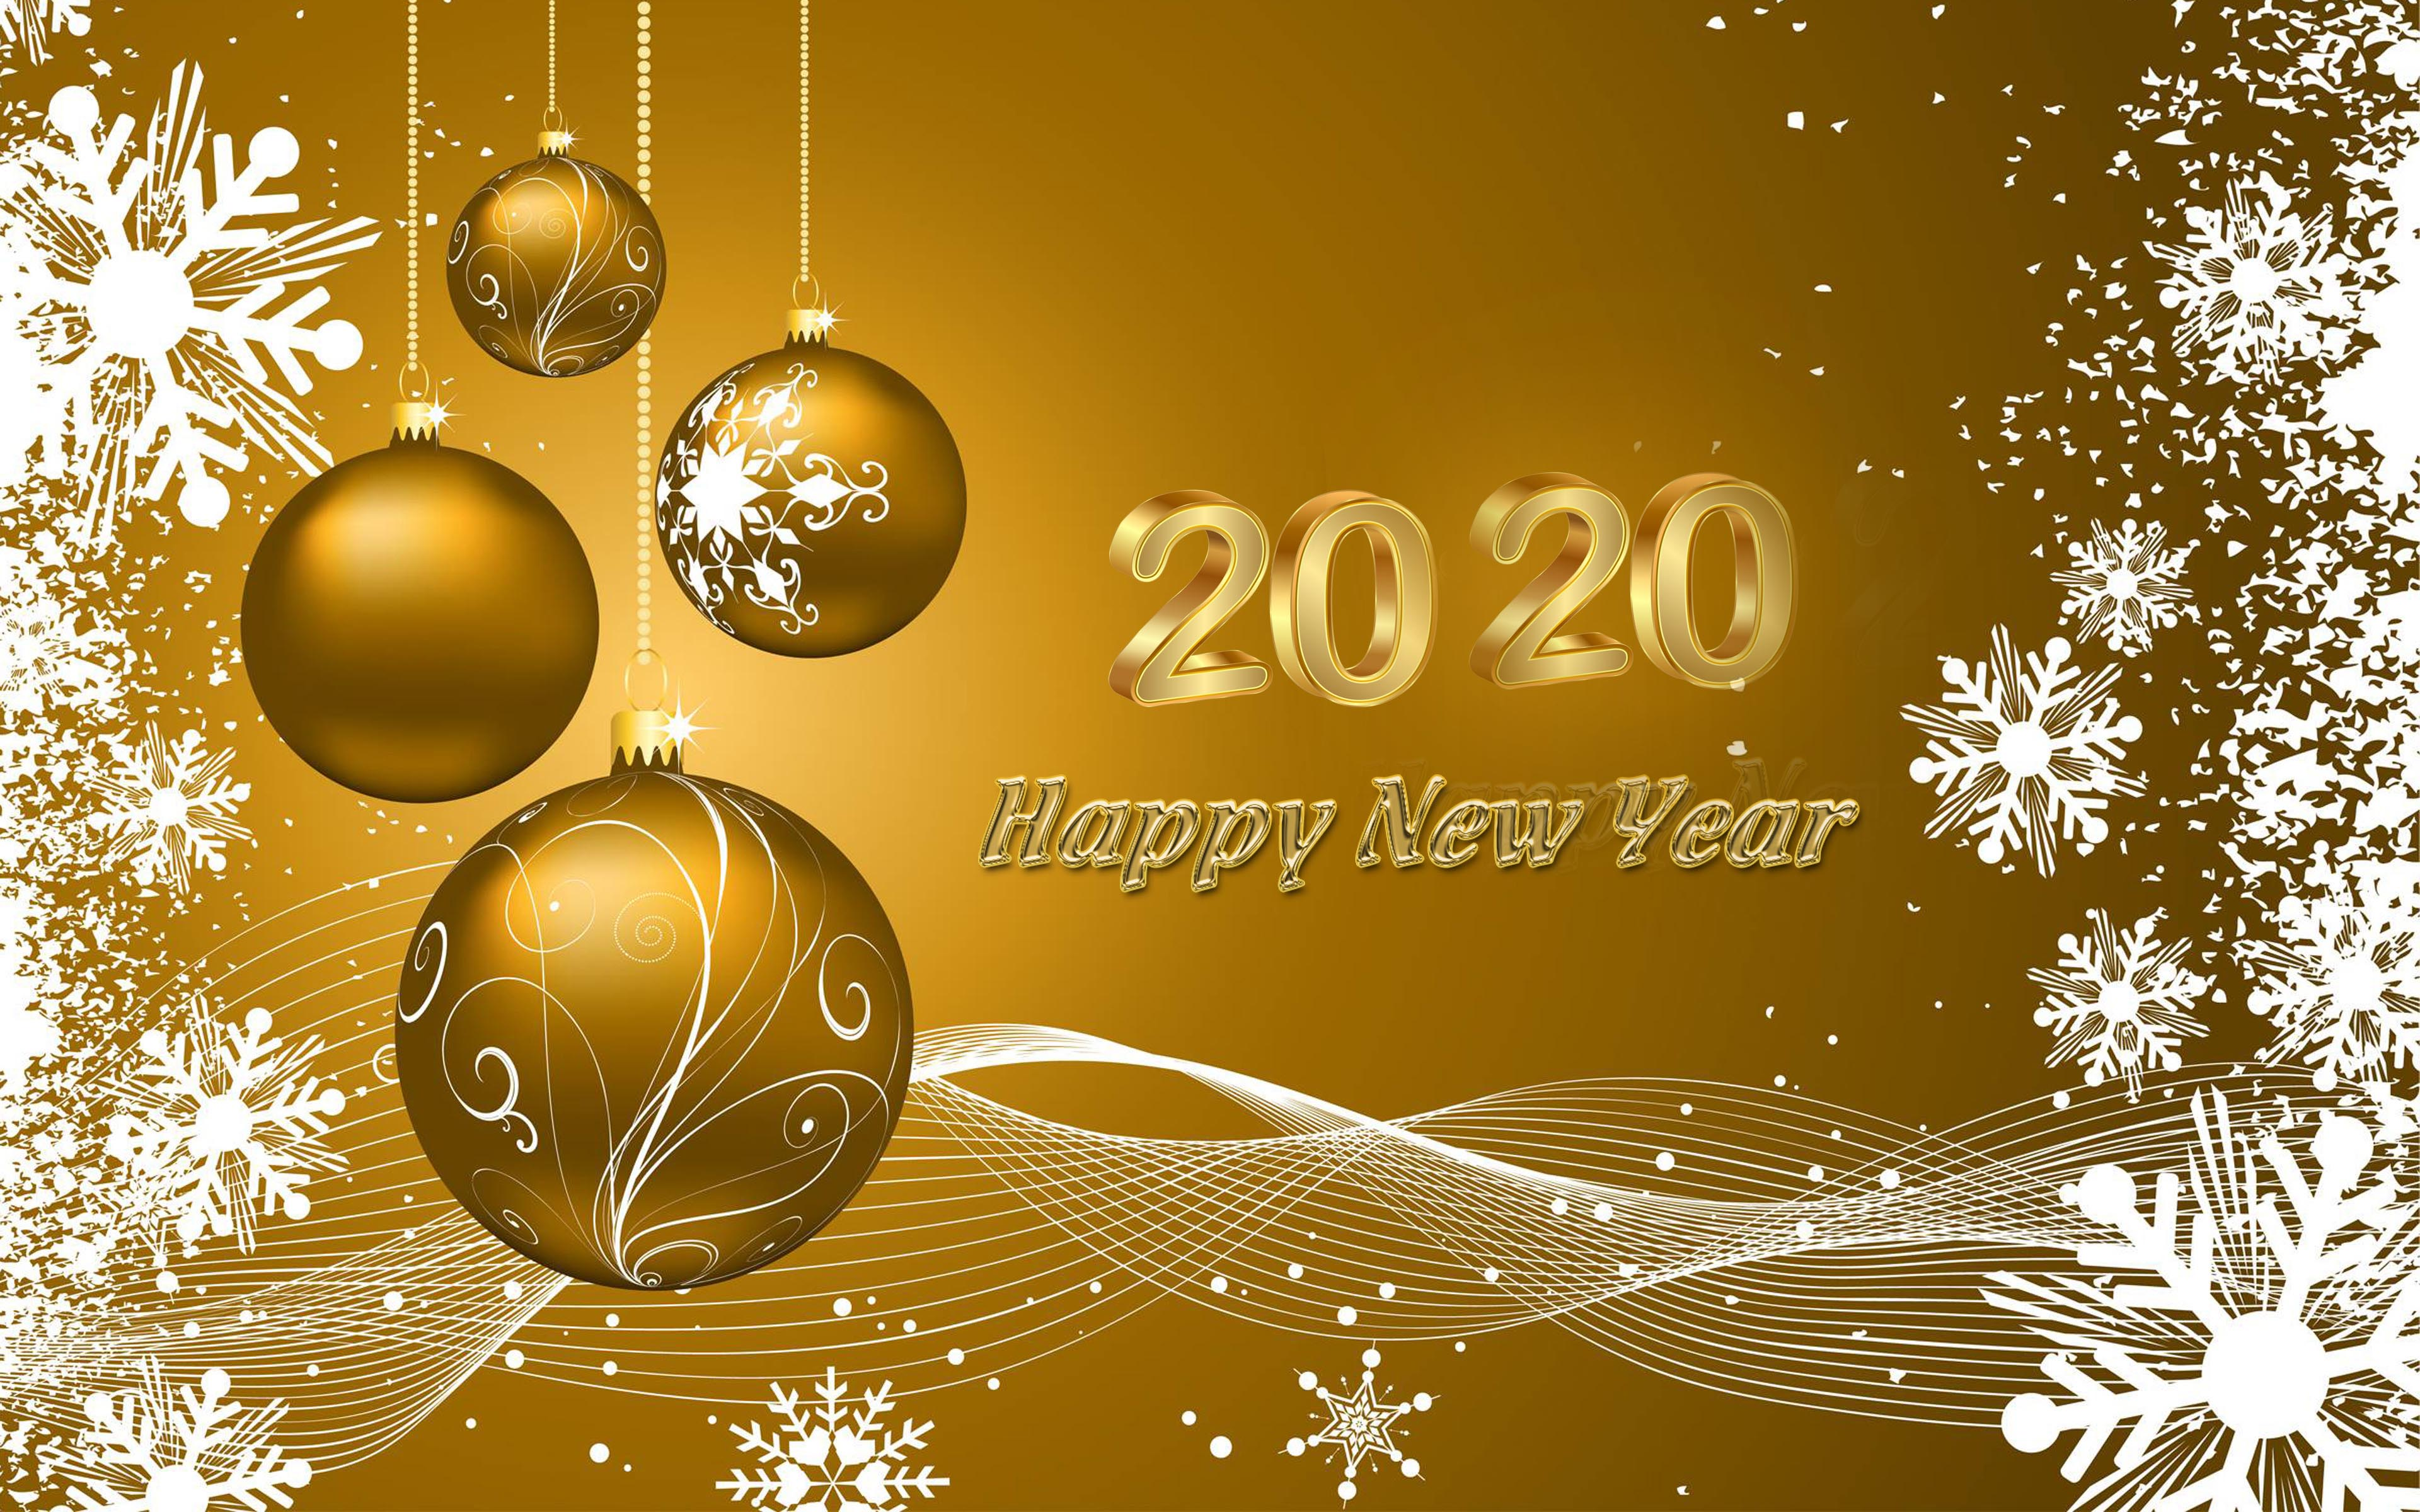 download Happy New 2020 Year Wishes Gold Greeting Card Quotes 3840x2400